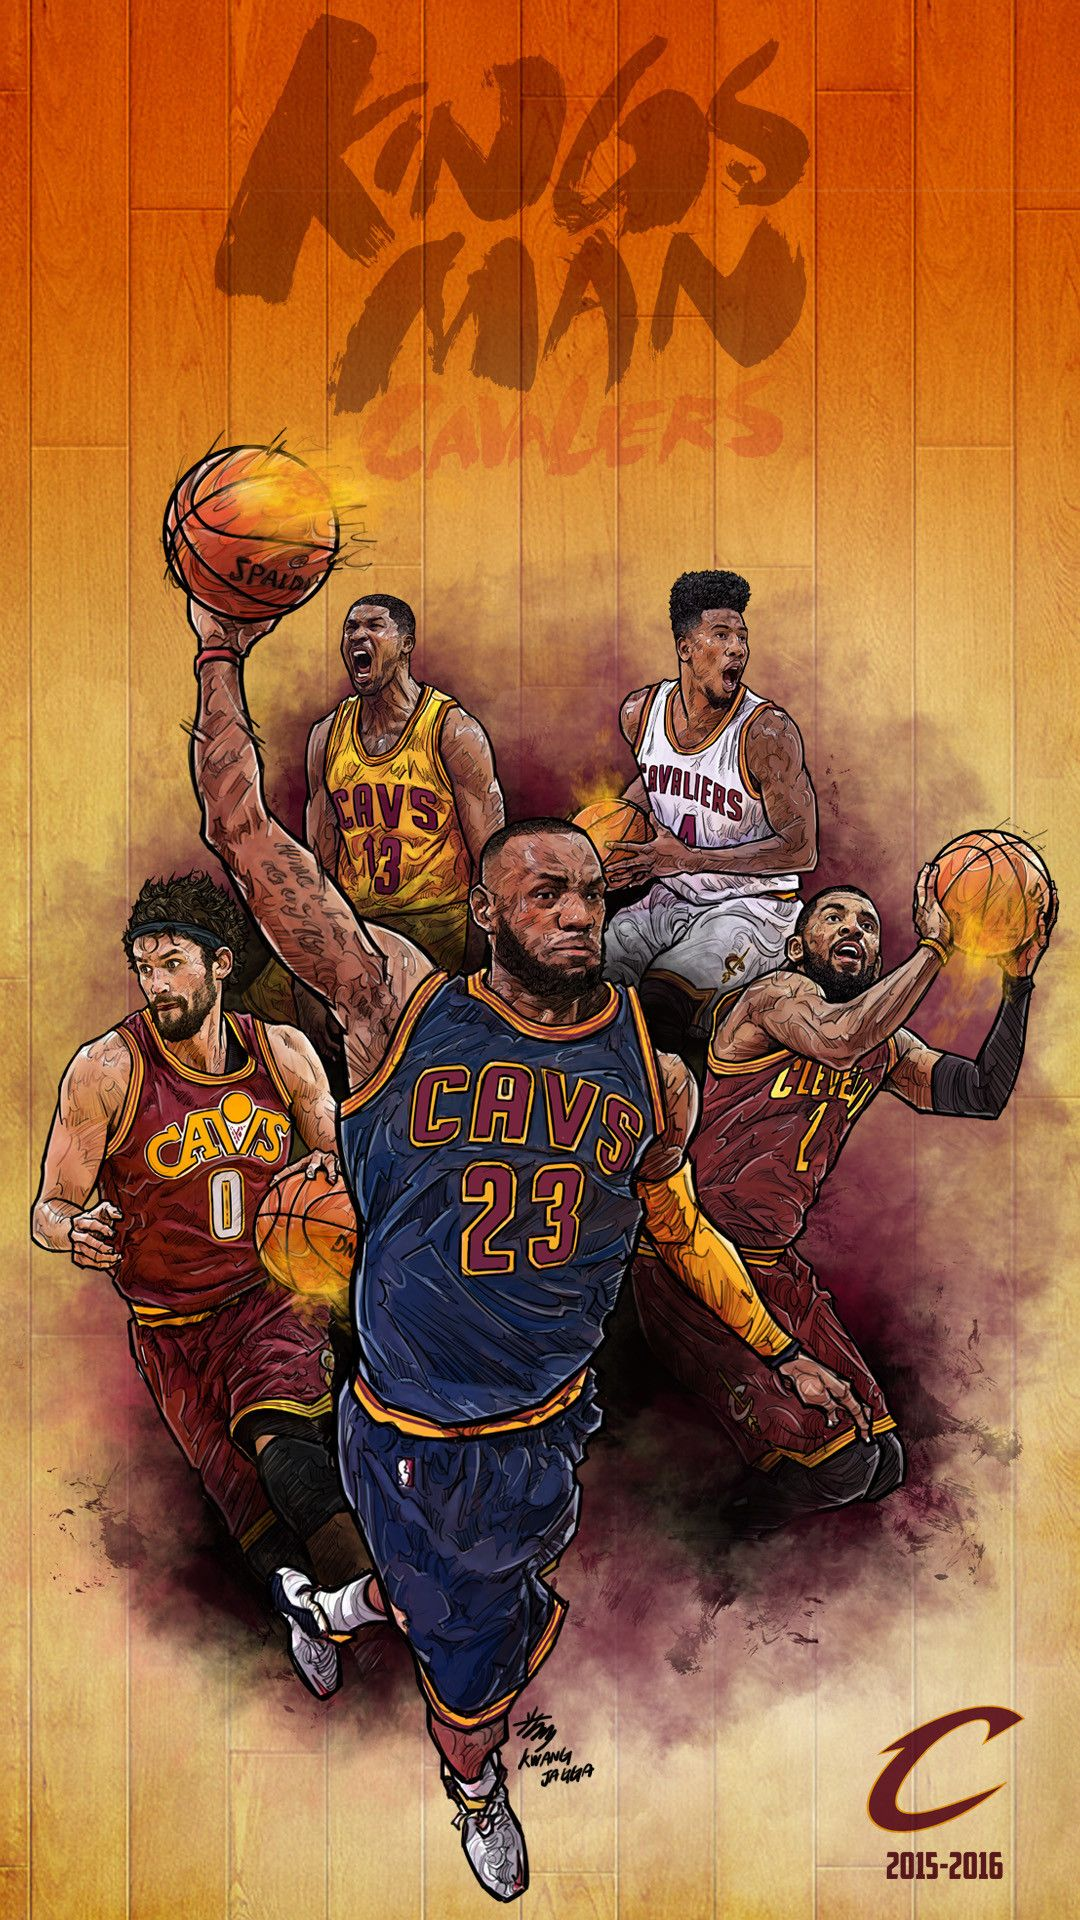 Basketball Wallpaper Home Screen In 2020 Basketball Wallpaper Lebron James Wallpapers Nba Basketball Art